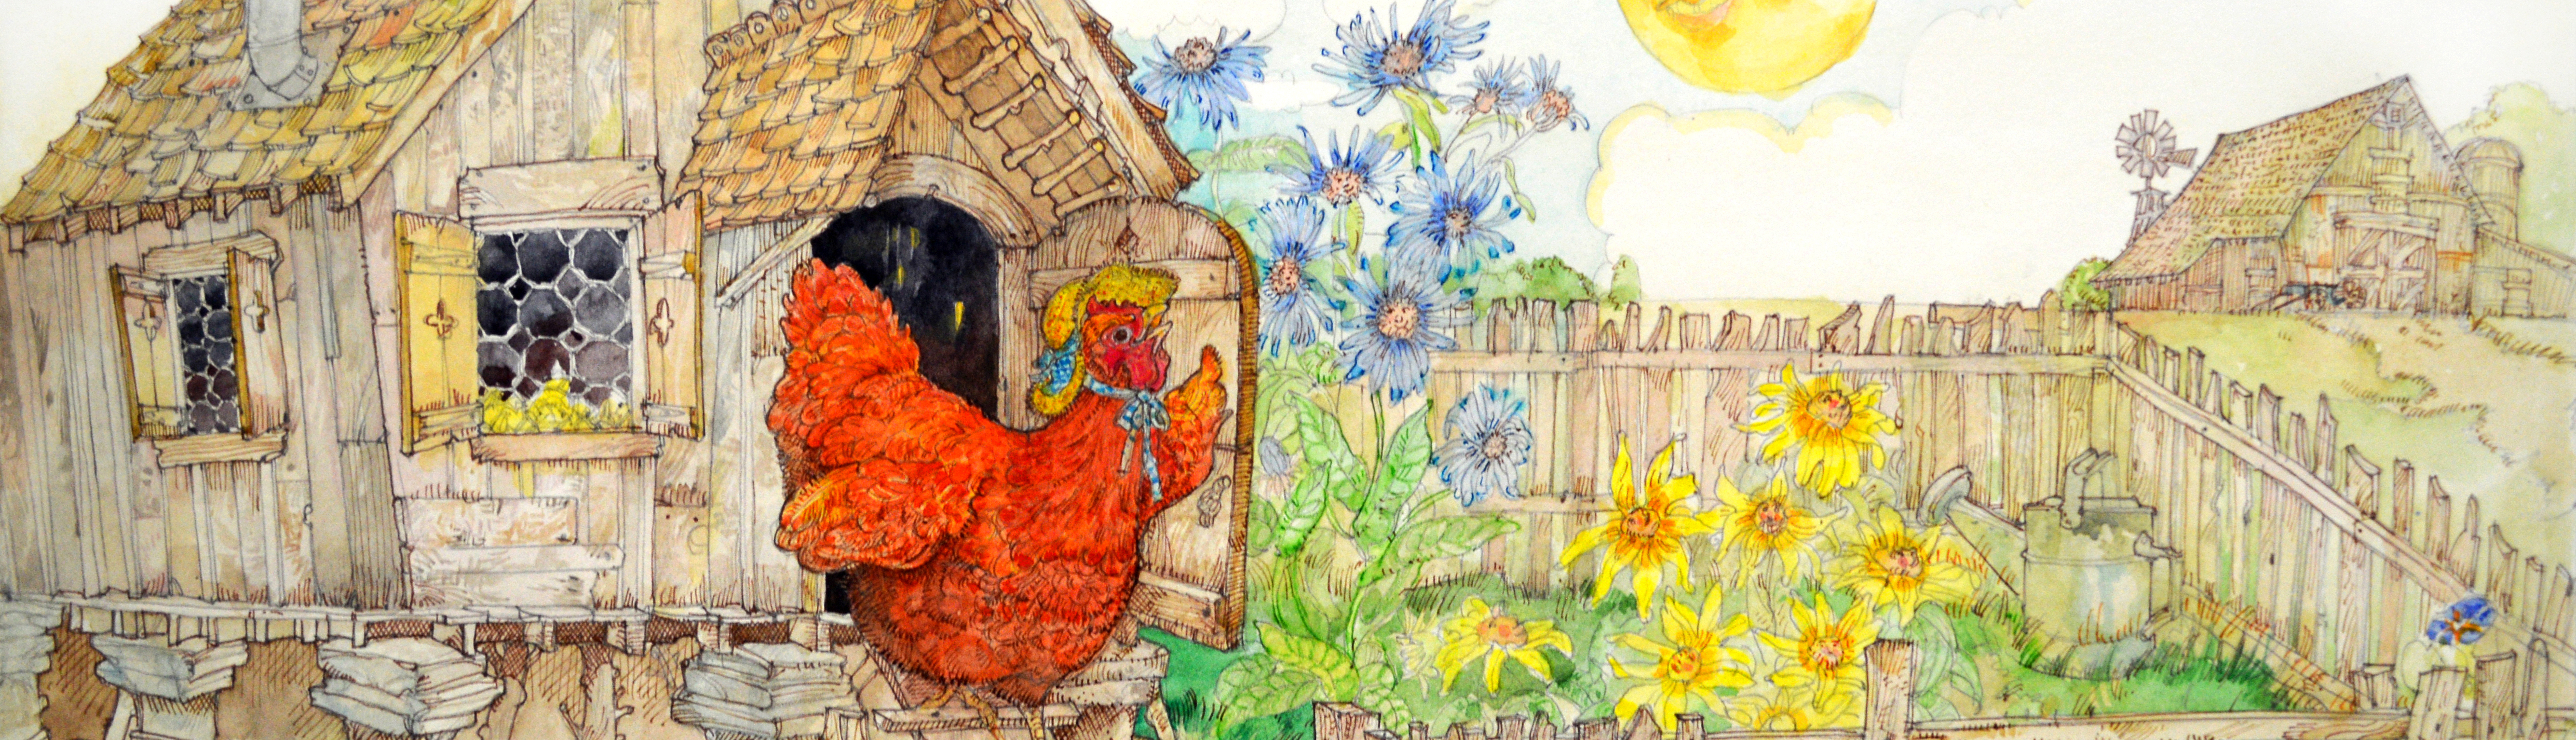 The Little Red Hen ∙ Jerry Pinkney ∙ R Michelson Galleries